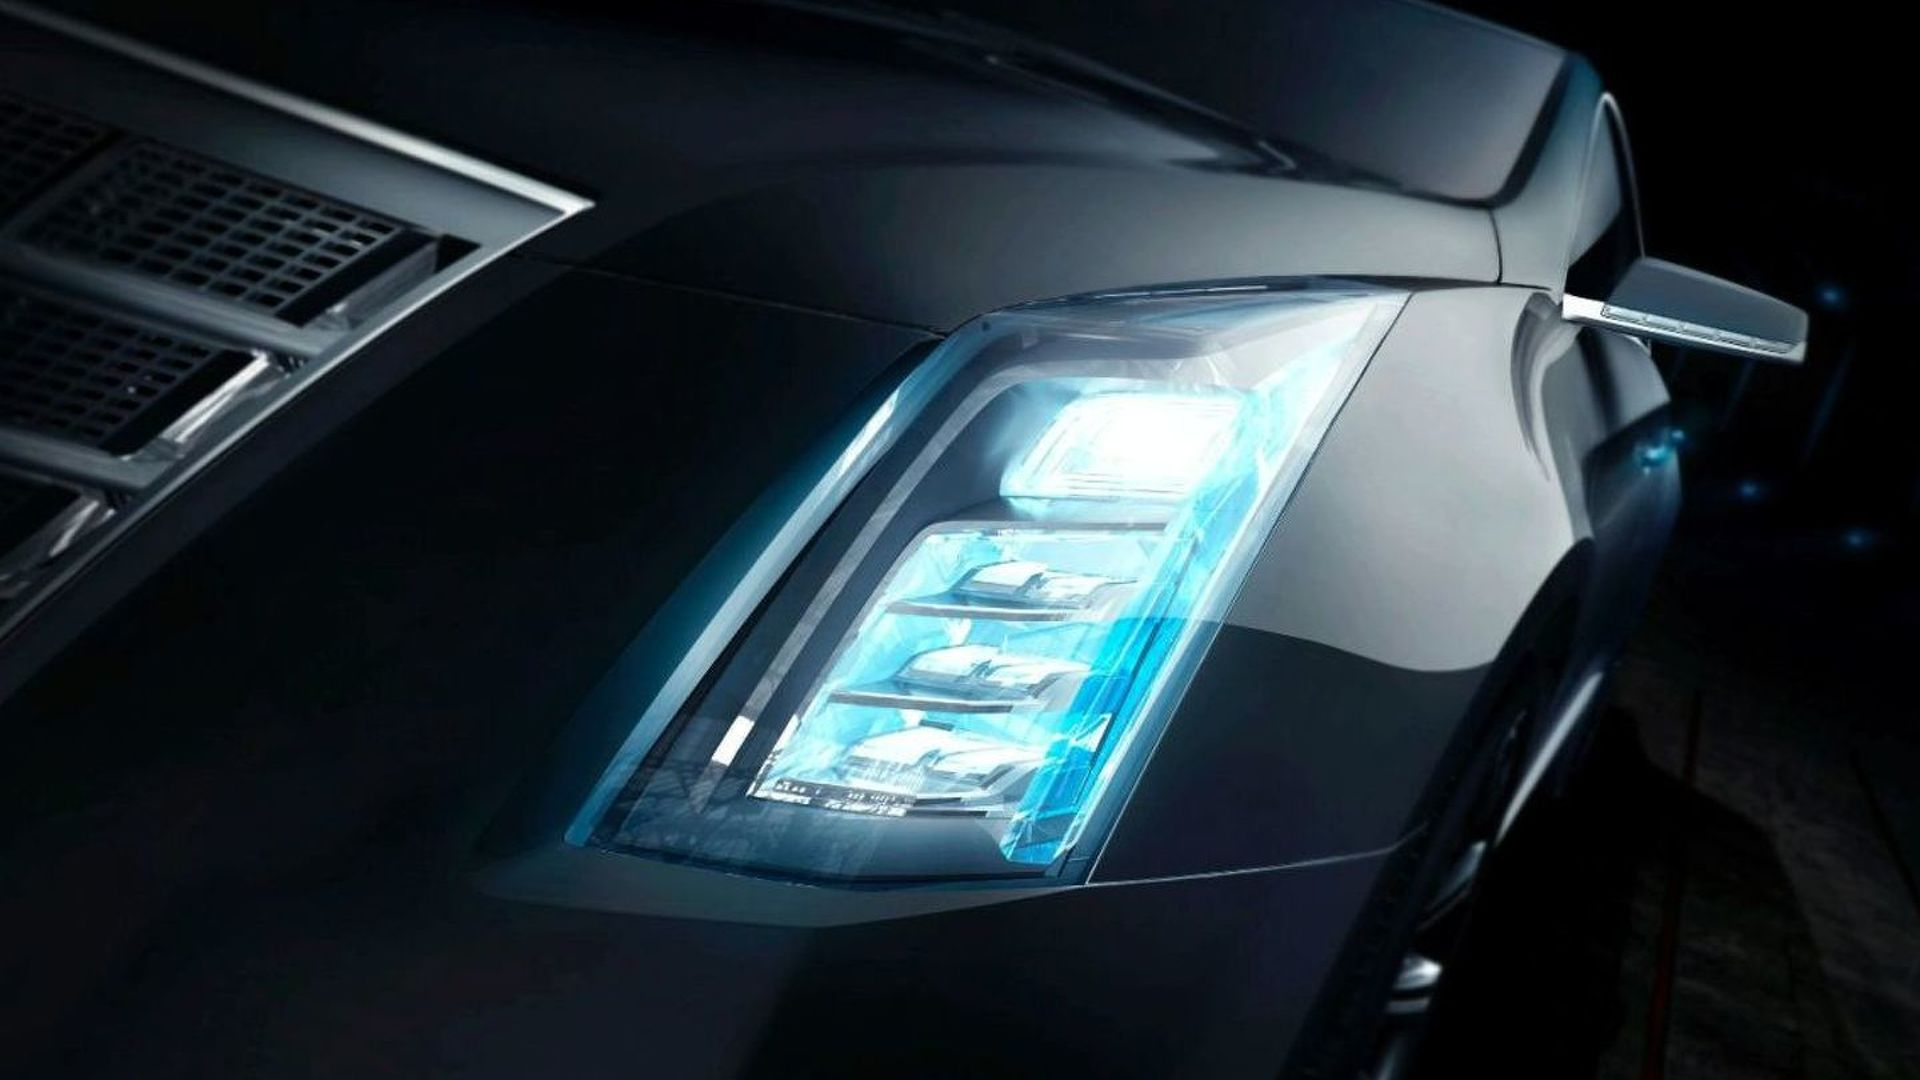 Mystery Cadillac Concept Confirmed as XTS